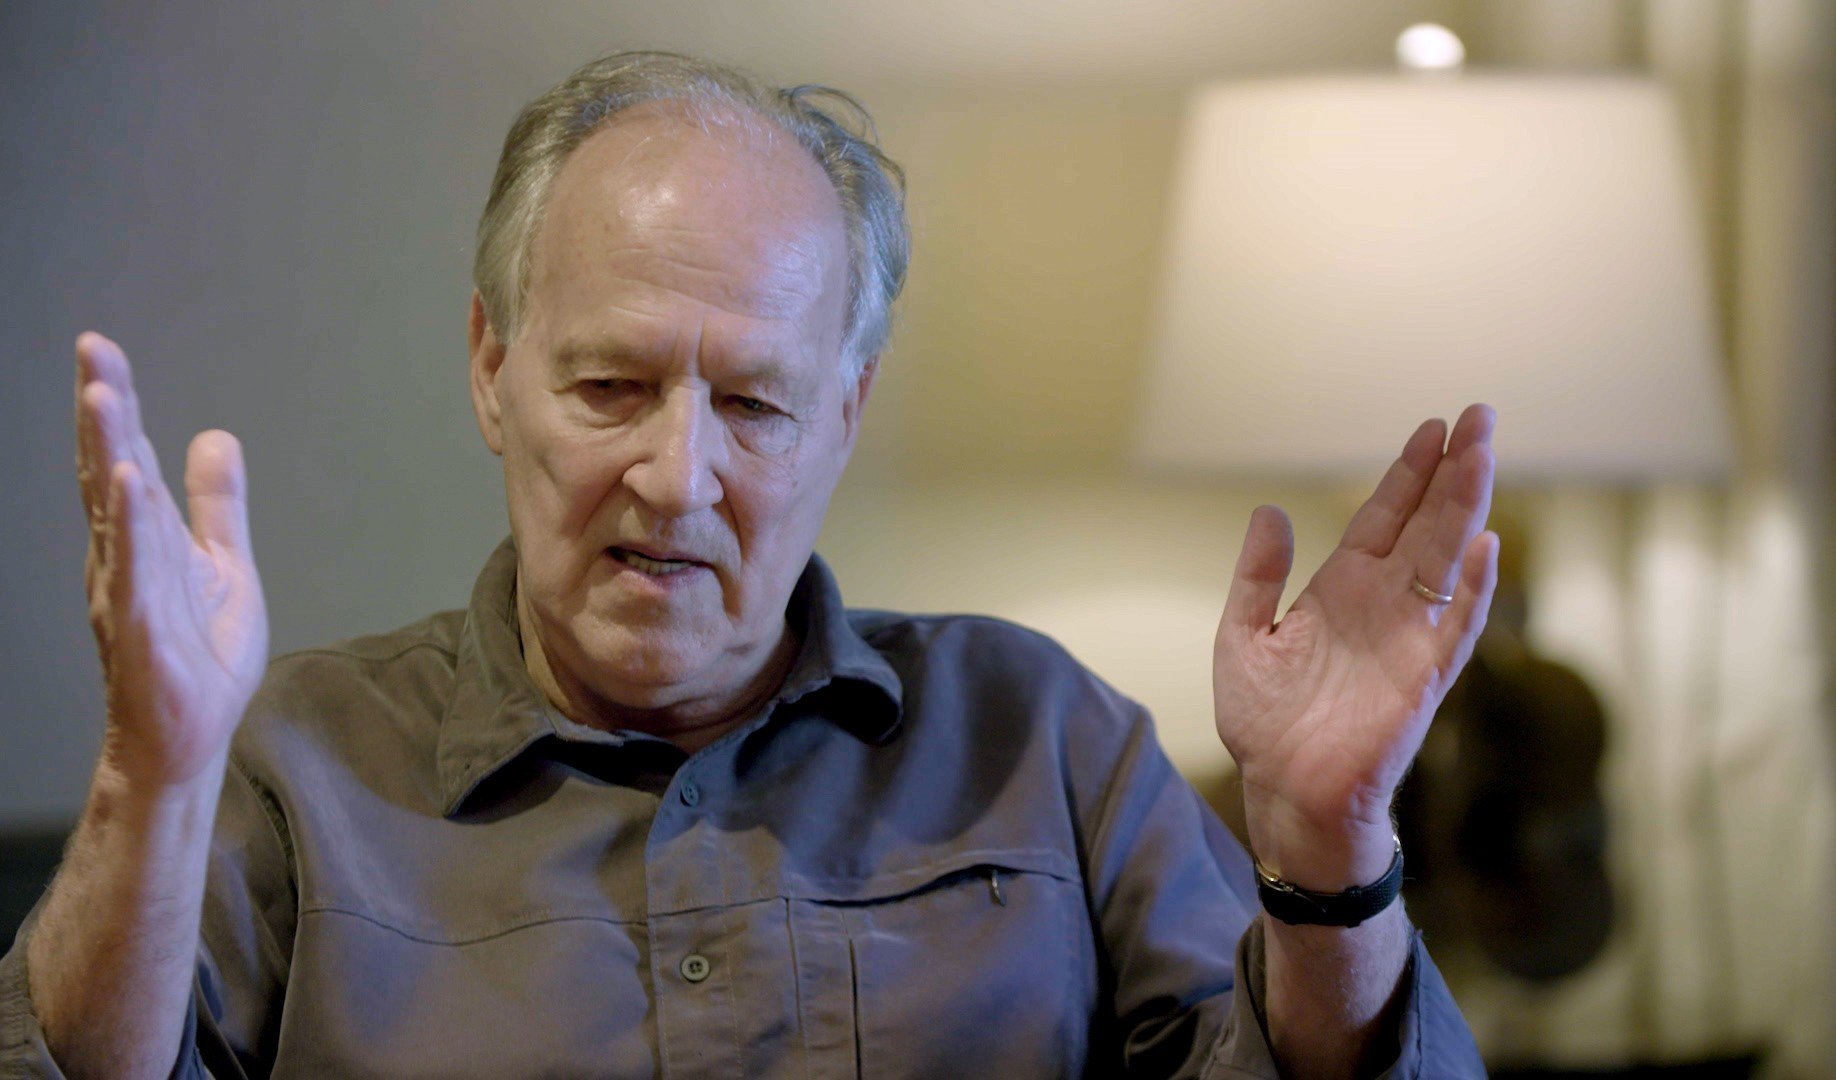 Werner Herzog Explains the Internet to Us